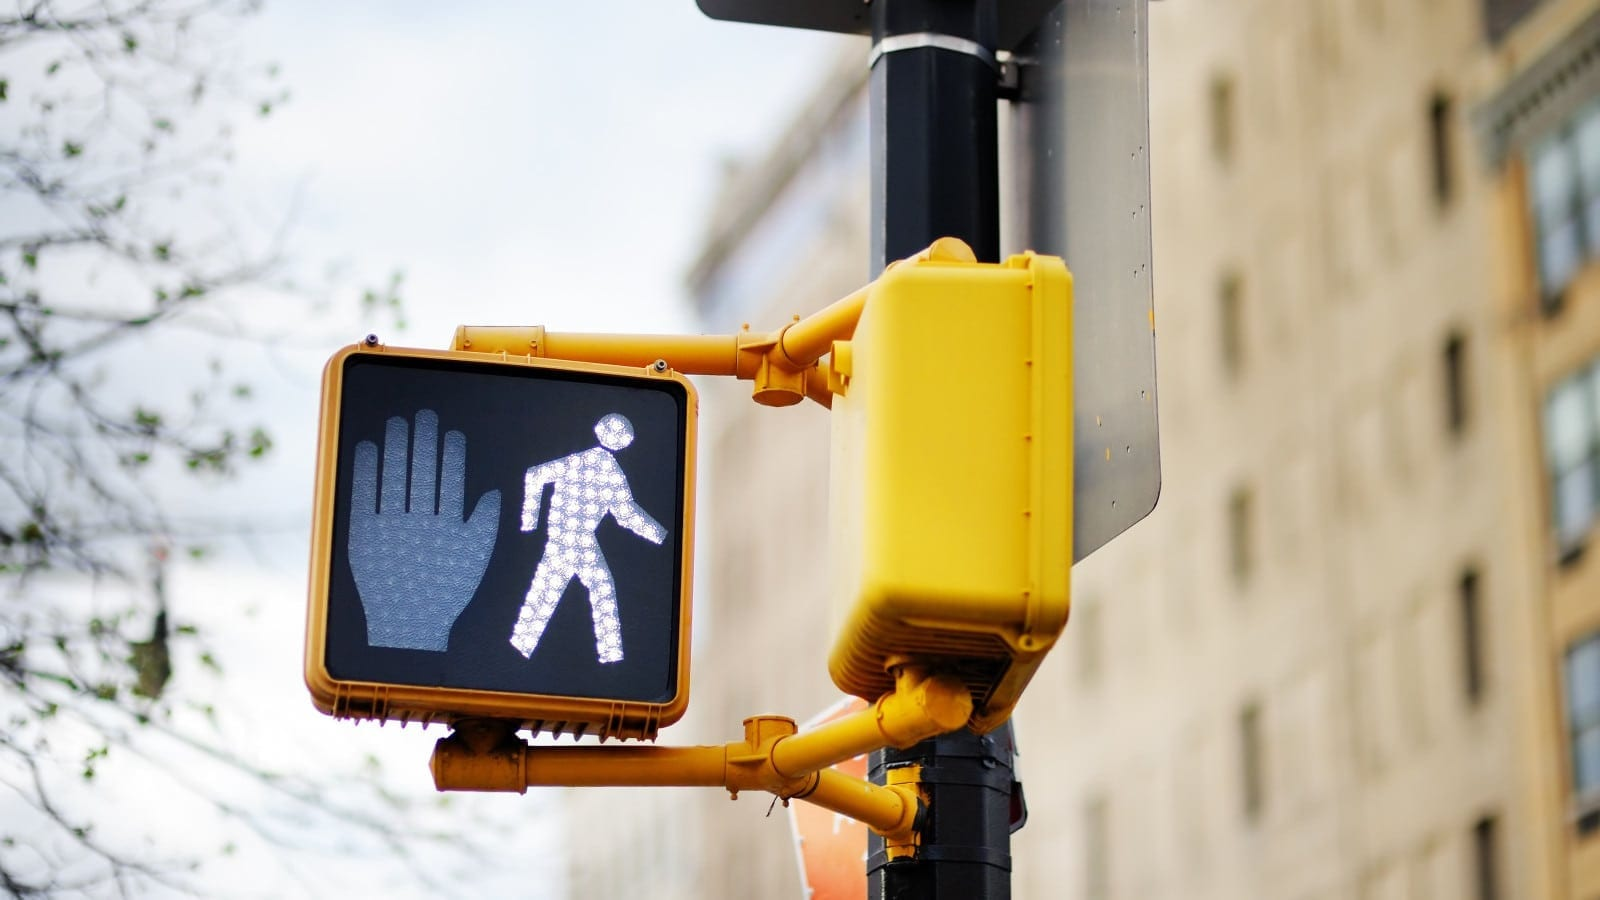 Do Not Cross Street Traffic Sign Stock Photo